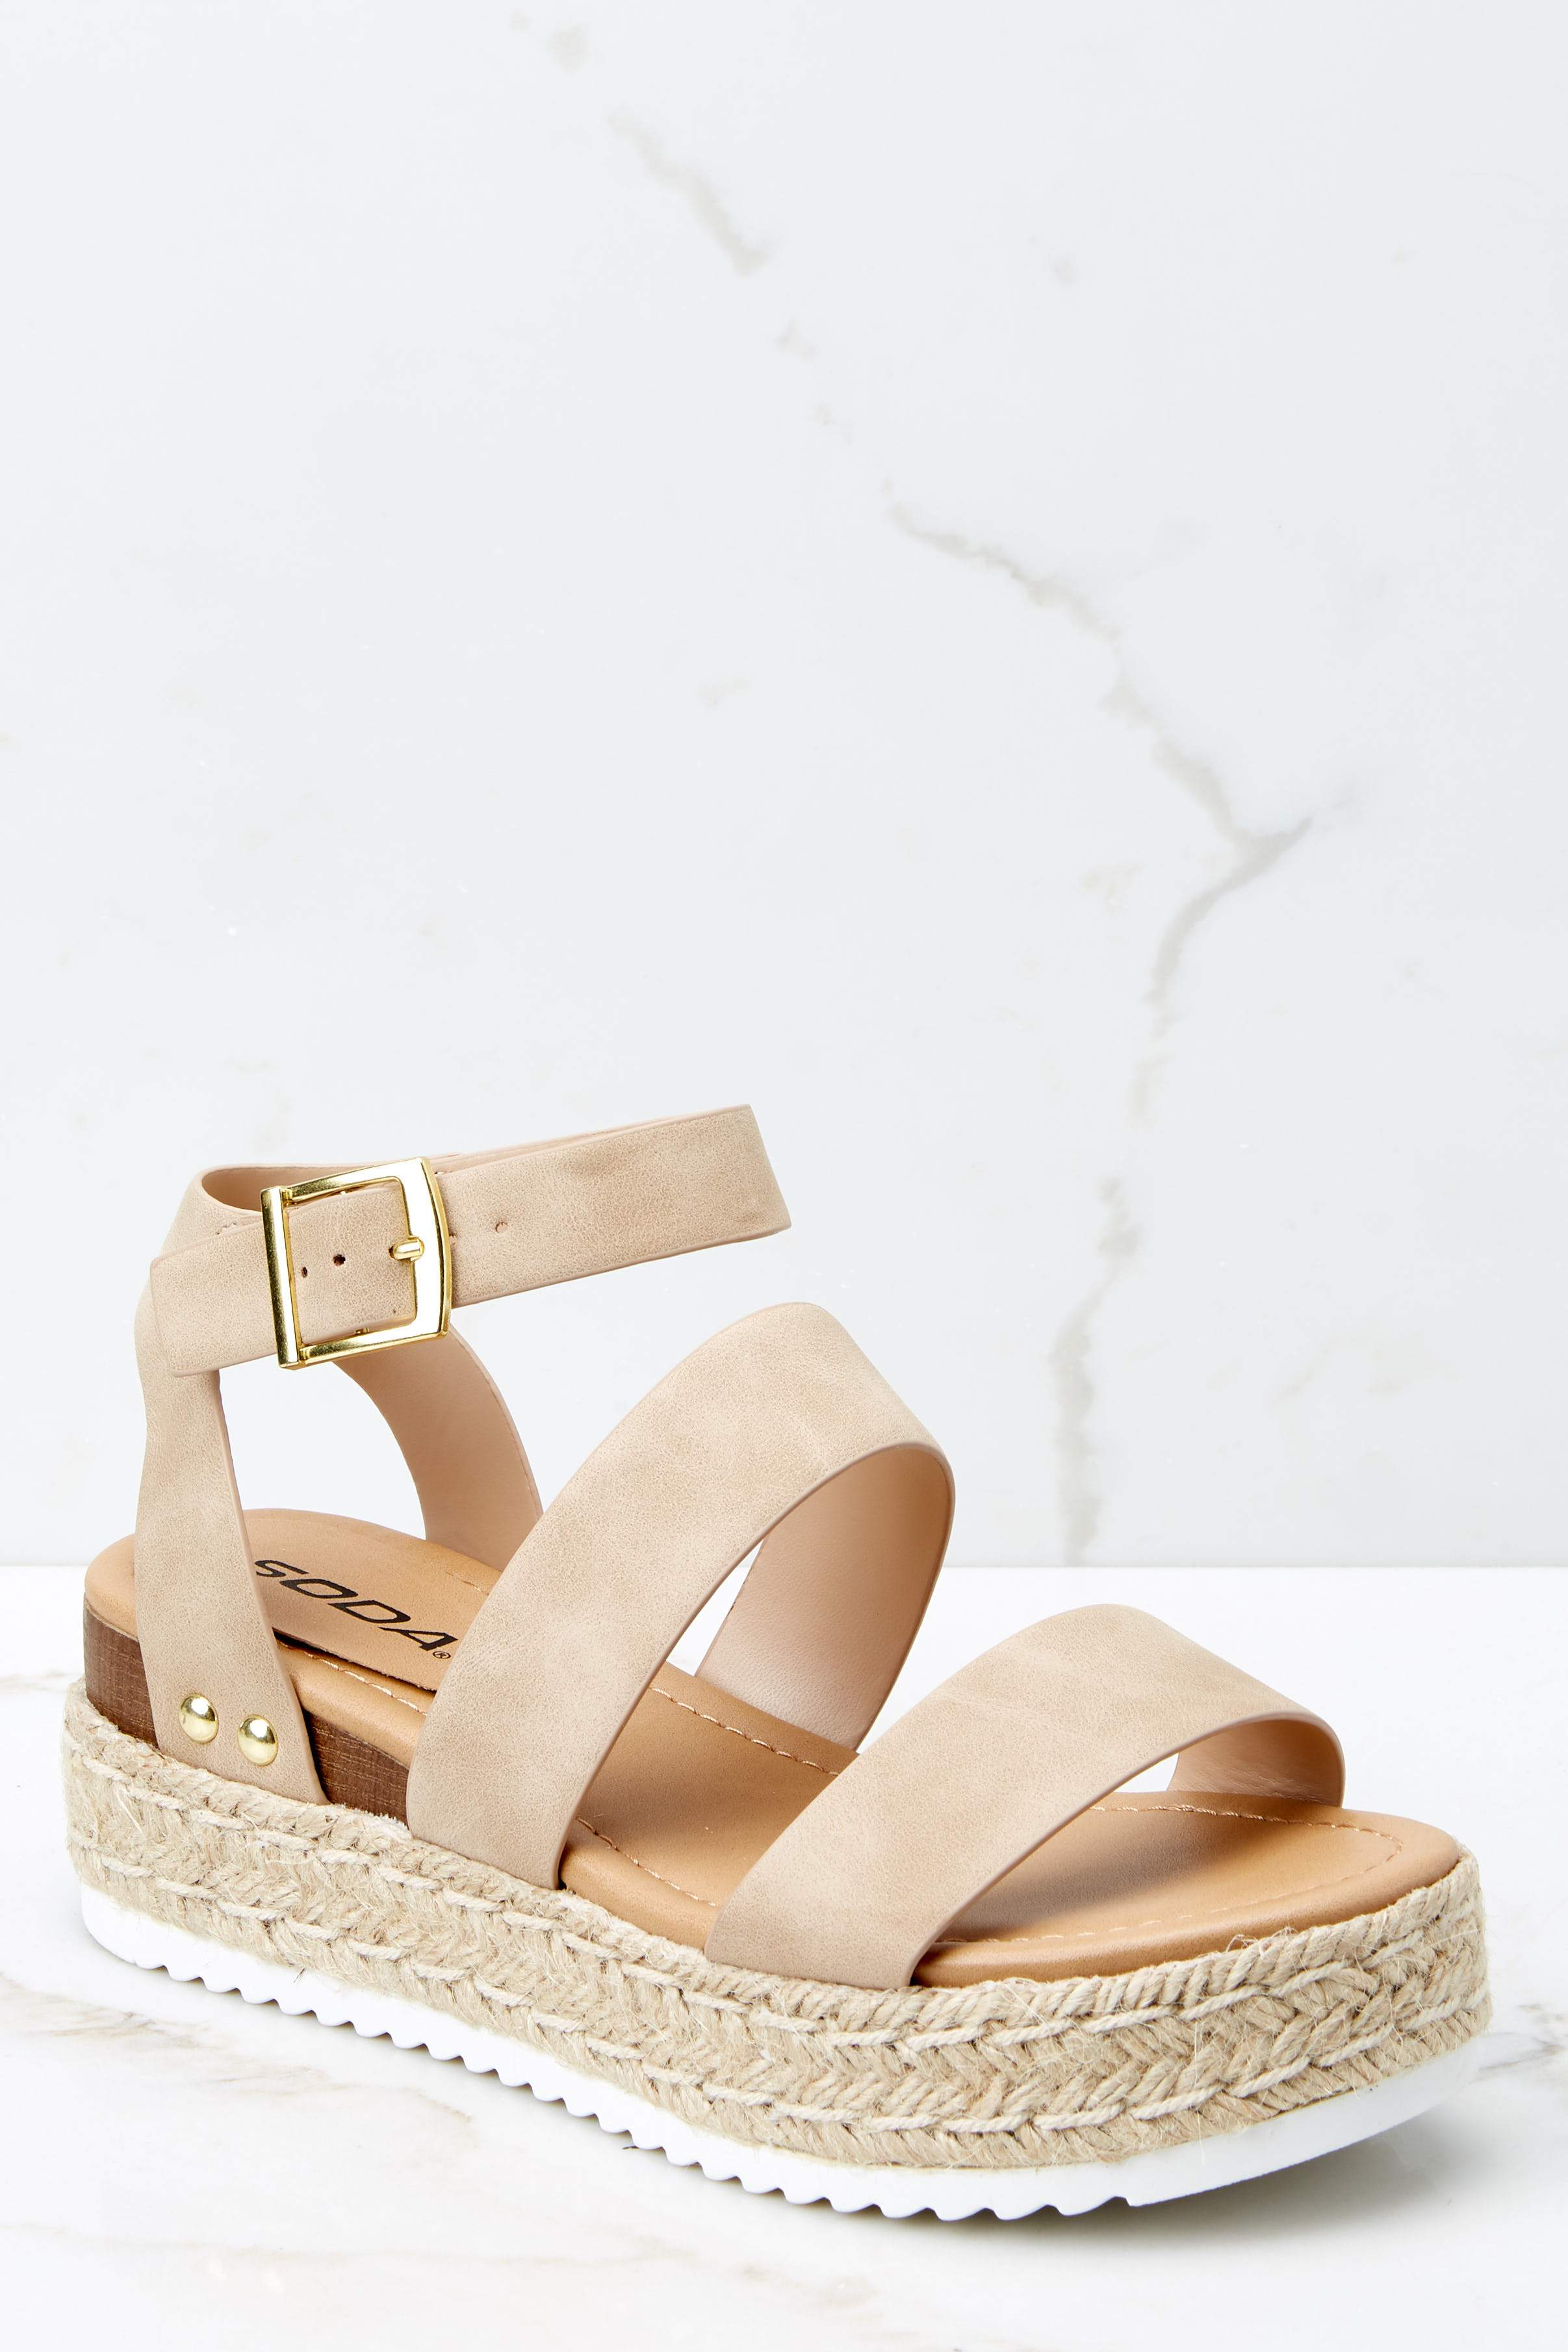 2 Going For Now Taupe Flatform Sandals at reddress.com